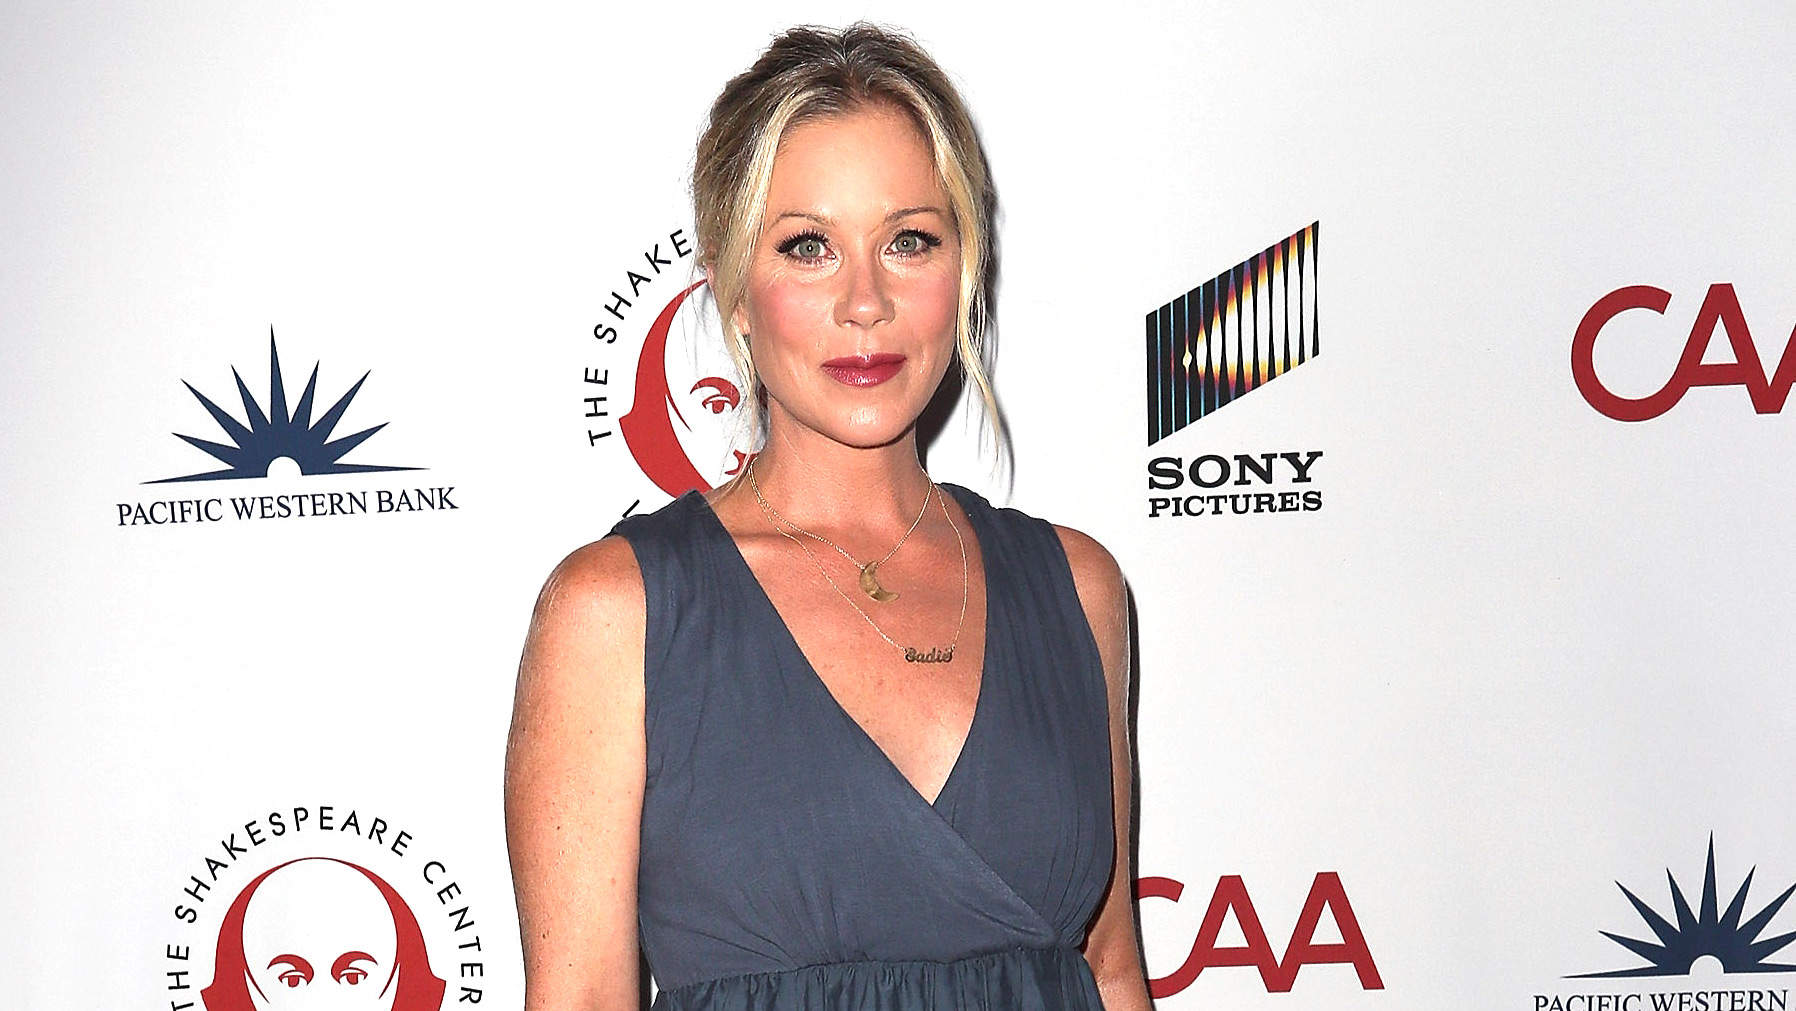 Cancer Survivor Christina Applegate Reveals She Had Ovaries and Fallopian Tubes Removed—and Worries For Her Daughter